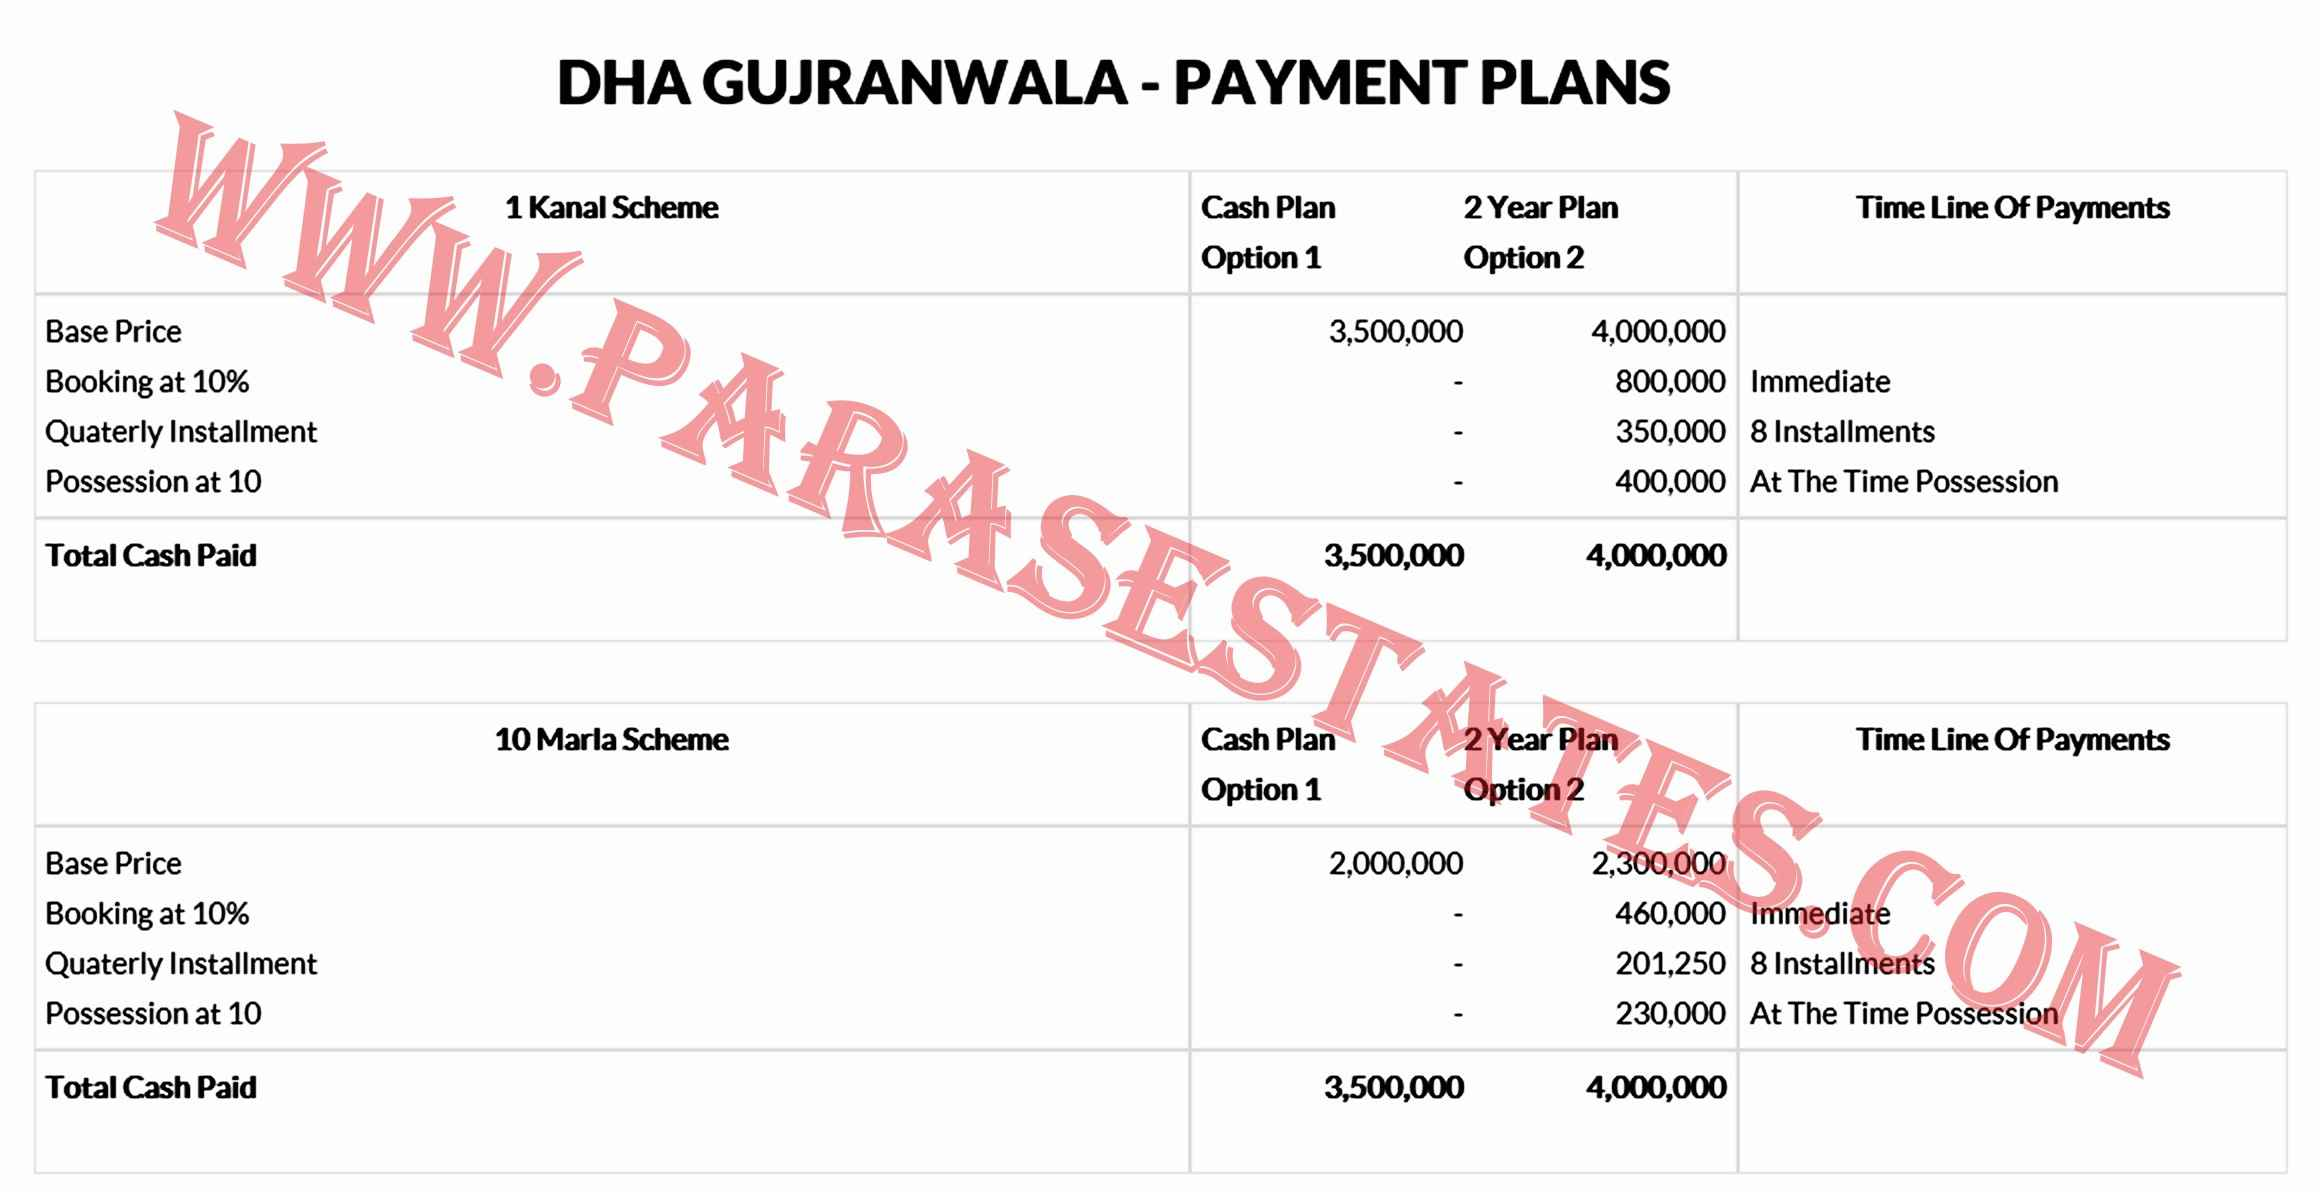 DHA Gujranwala Payment Plan